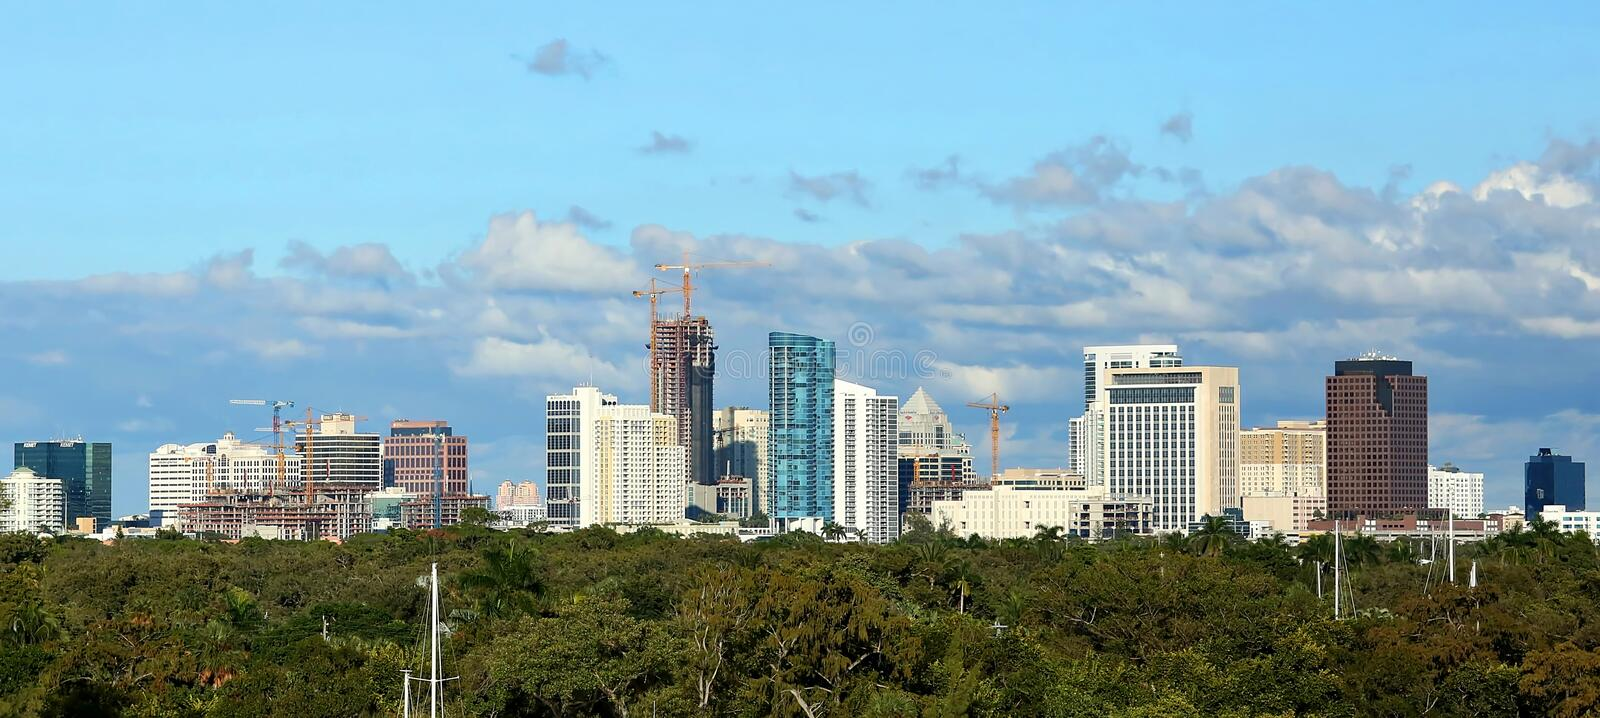 Fort Lauderdale Skyline with new construction stock photo